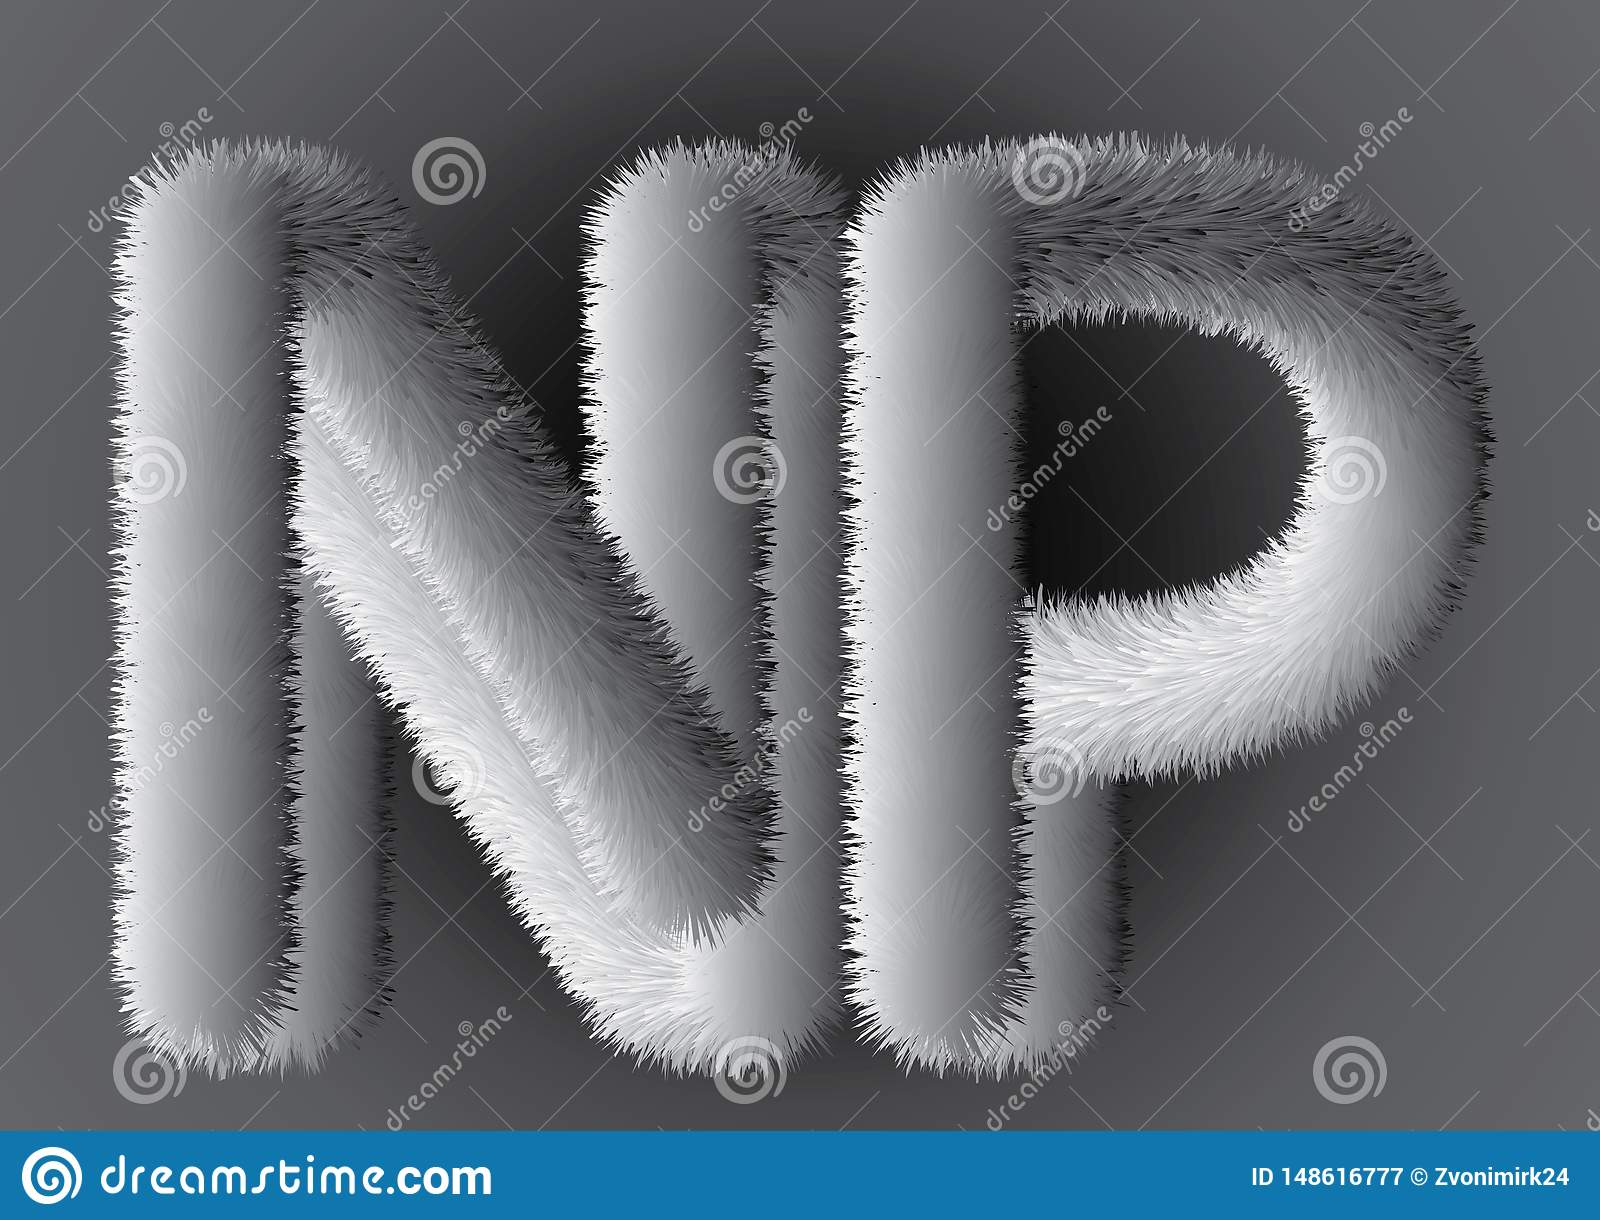 fluffy flur beutiful gray letters np on gray gradient background